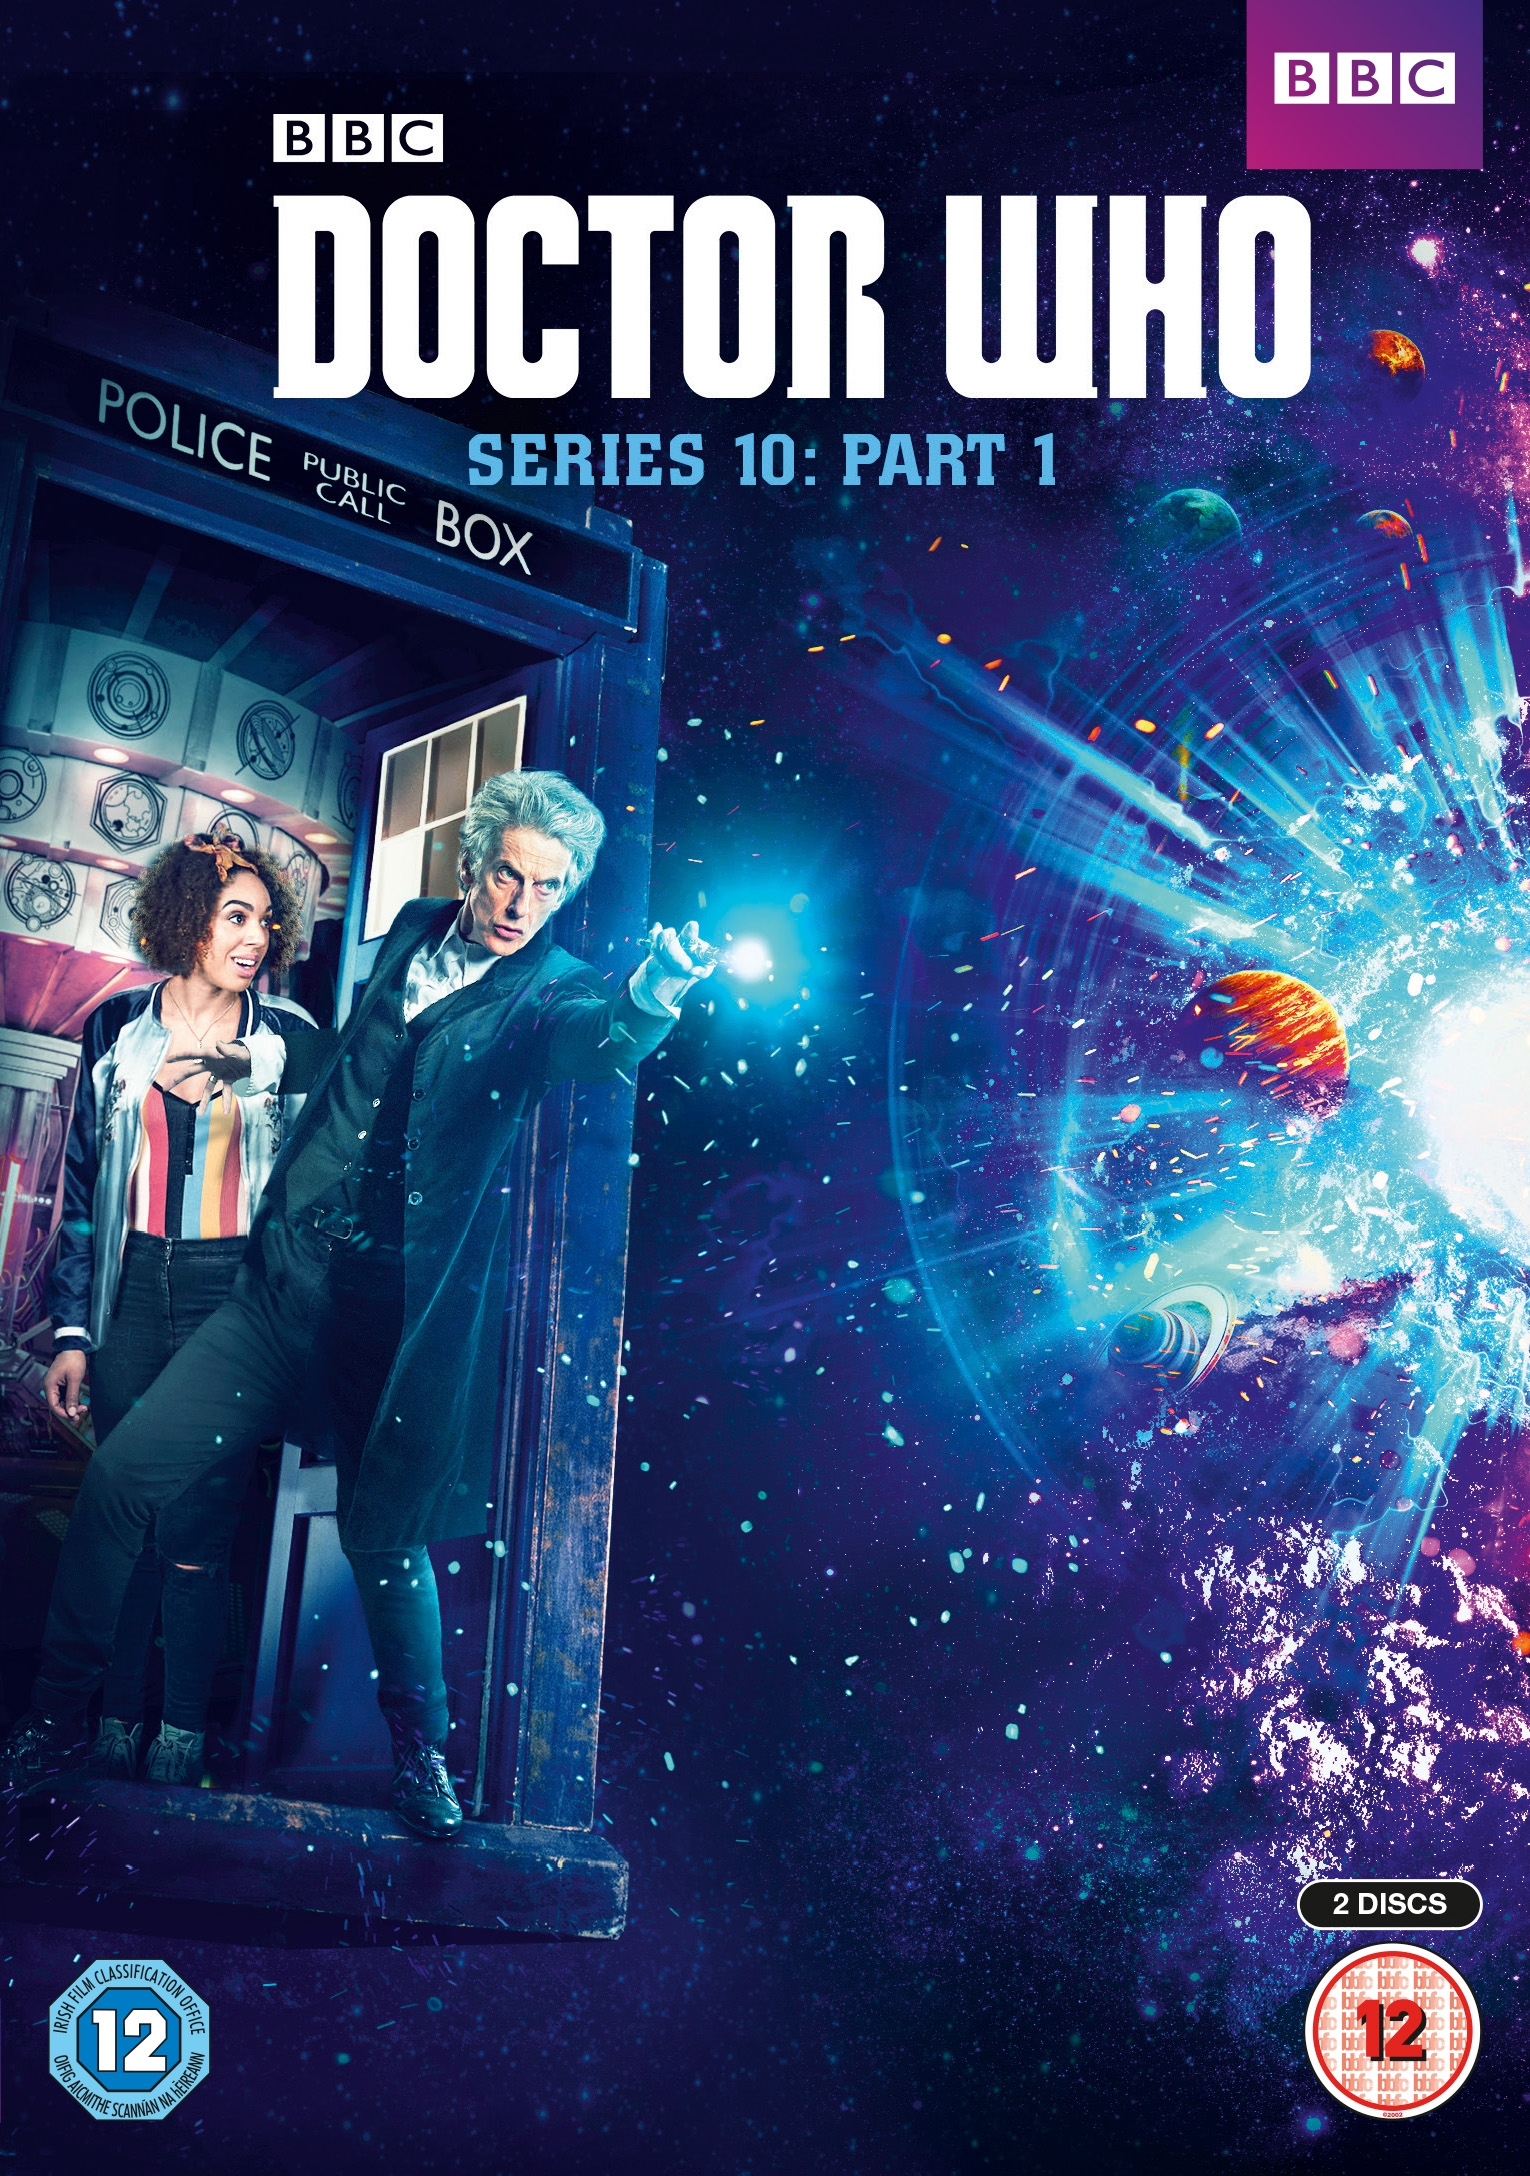 Doctor Who Series 10: Part 1 on DVD/Bluray (Credit: BBC Worldwide)